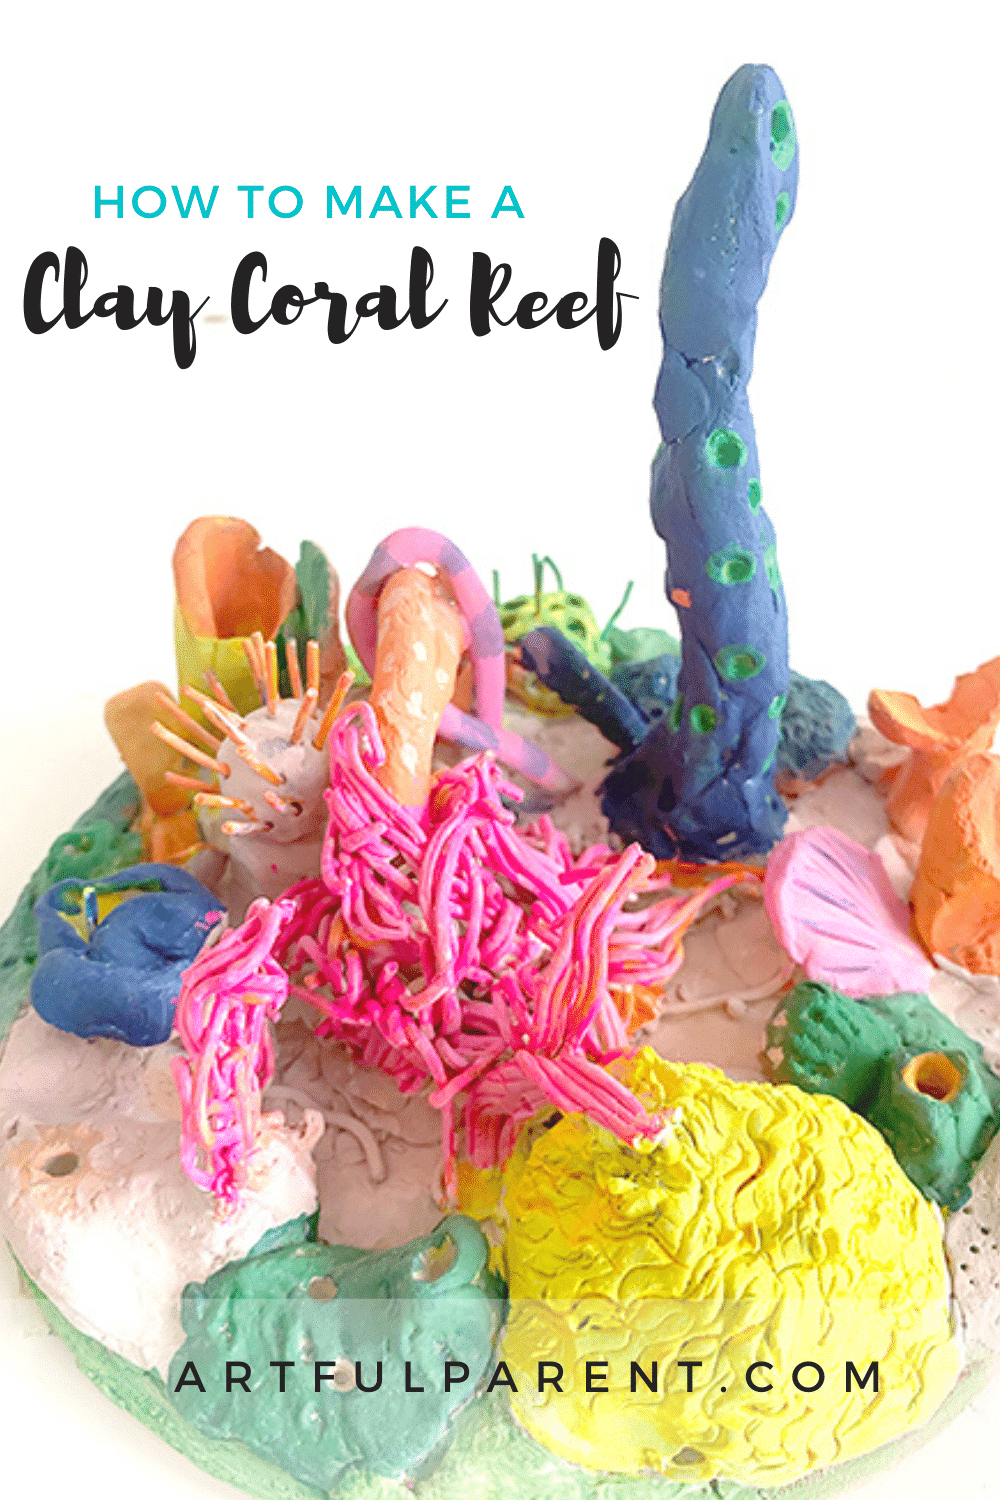 Create your own coral reef with air dry clay!